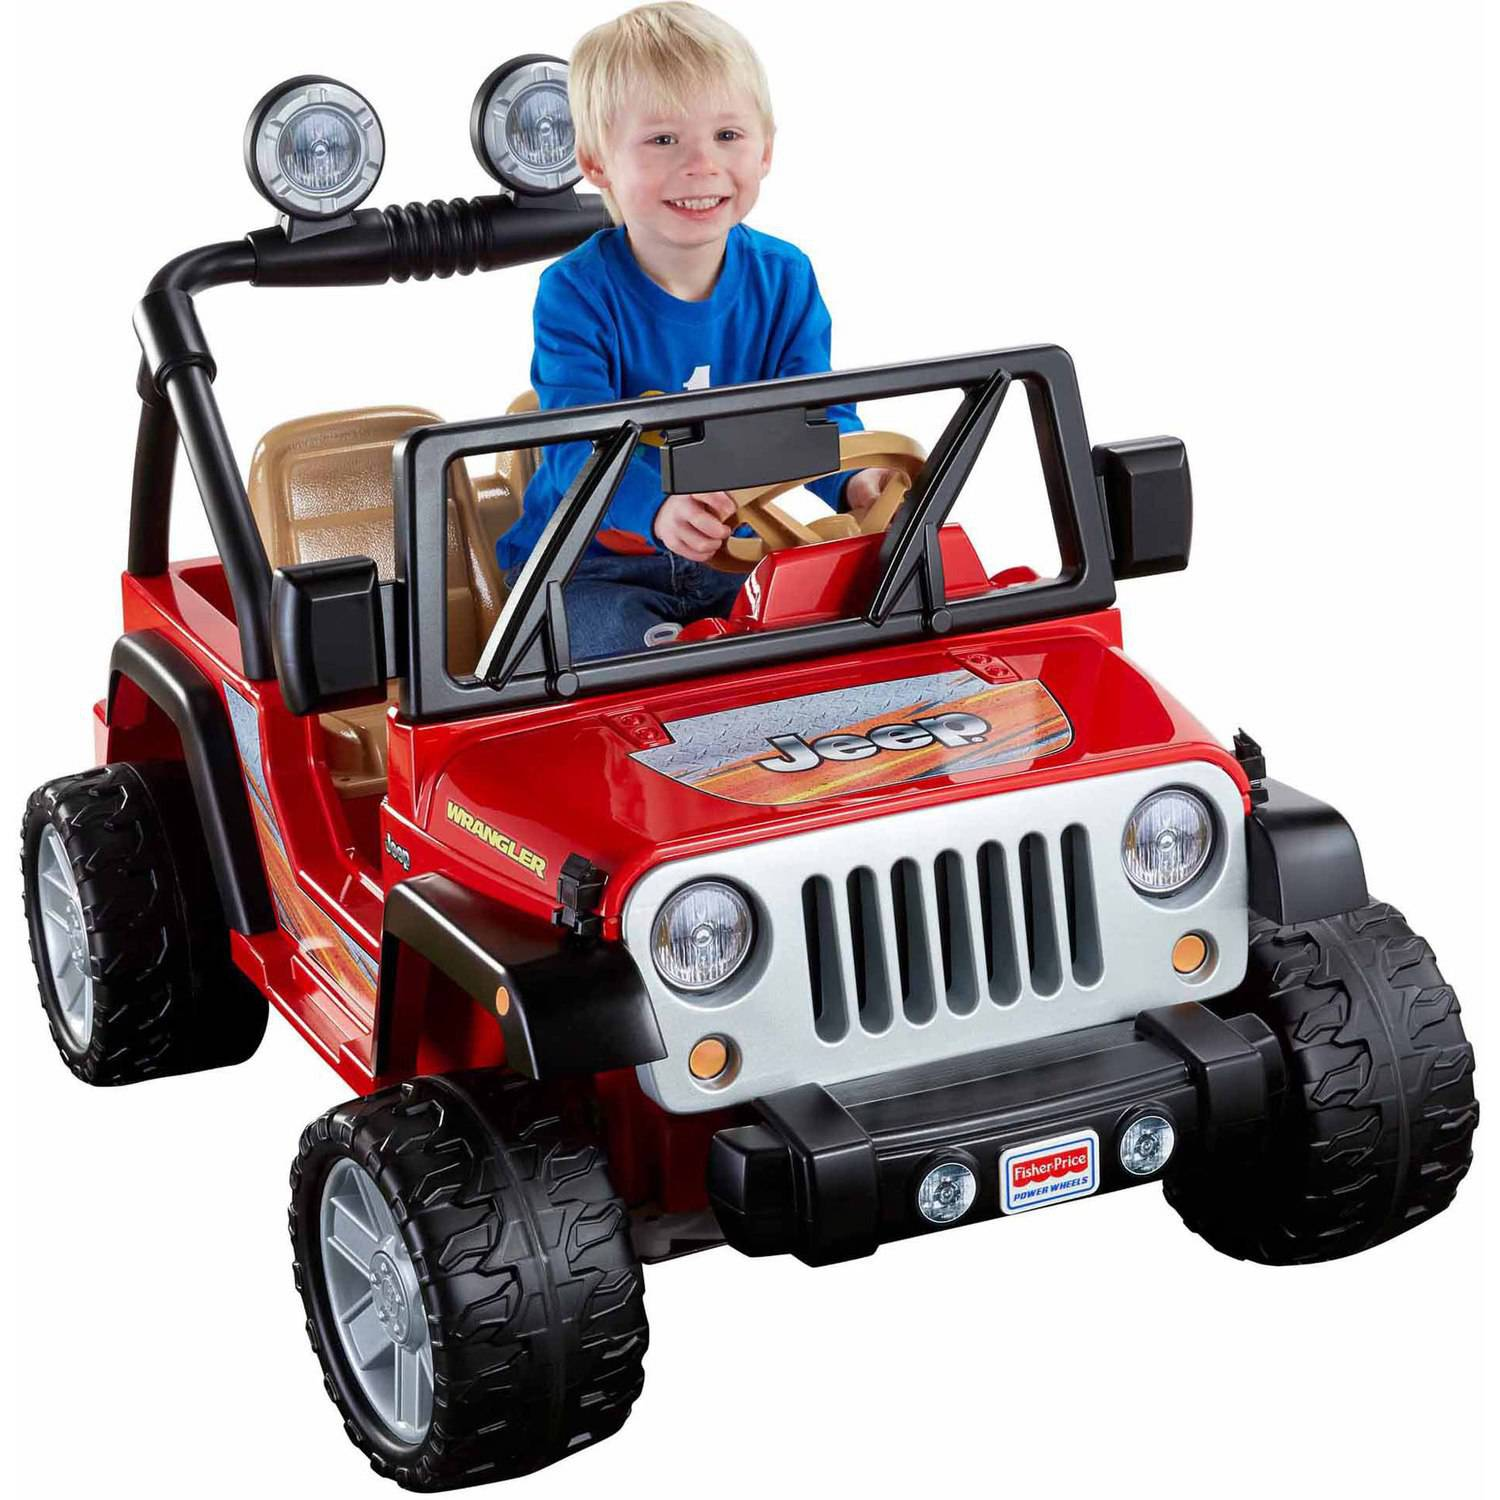 Power Wheels Jeep Wrangler 12-Volt Battery-Powered Ride-On, Red